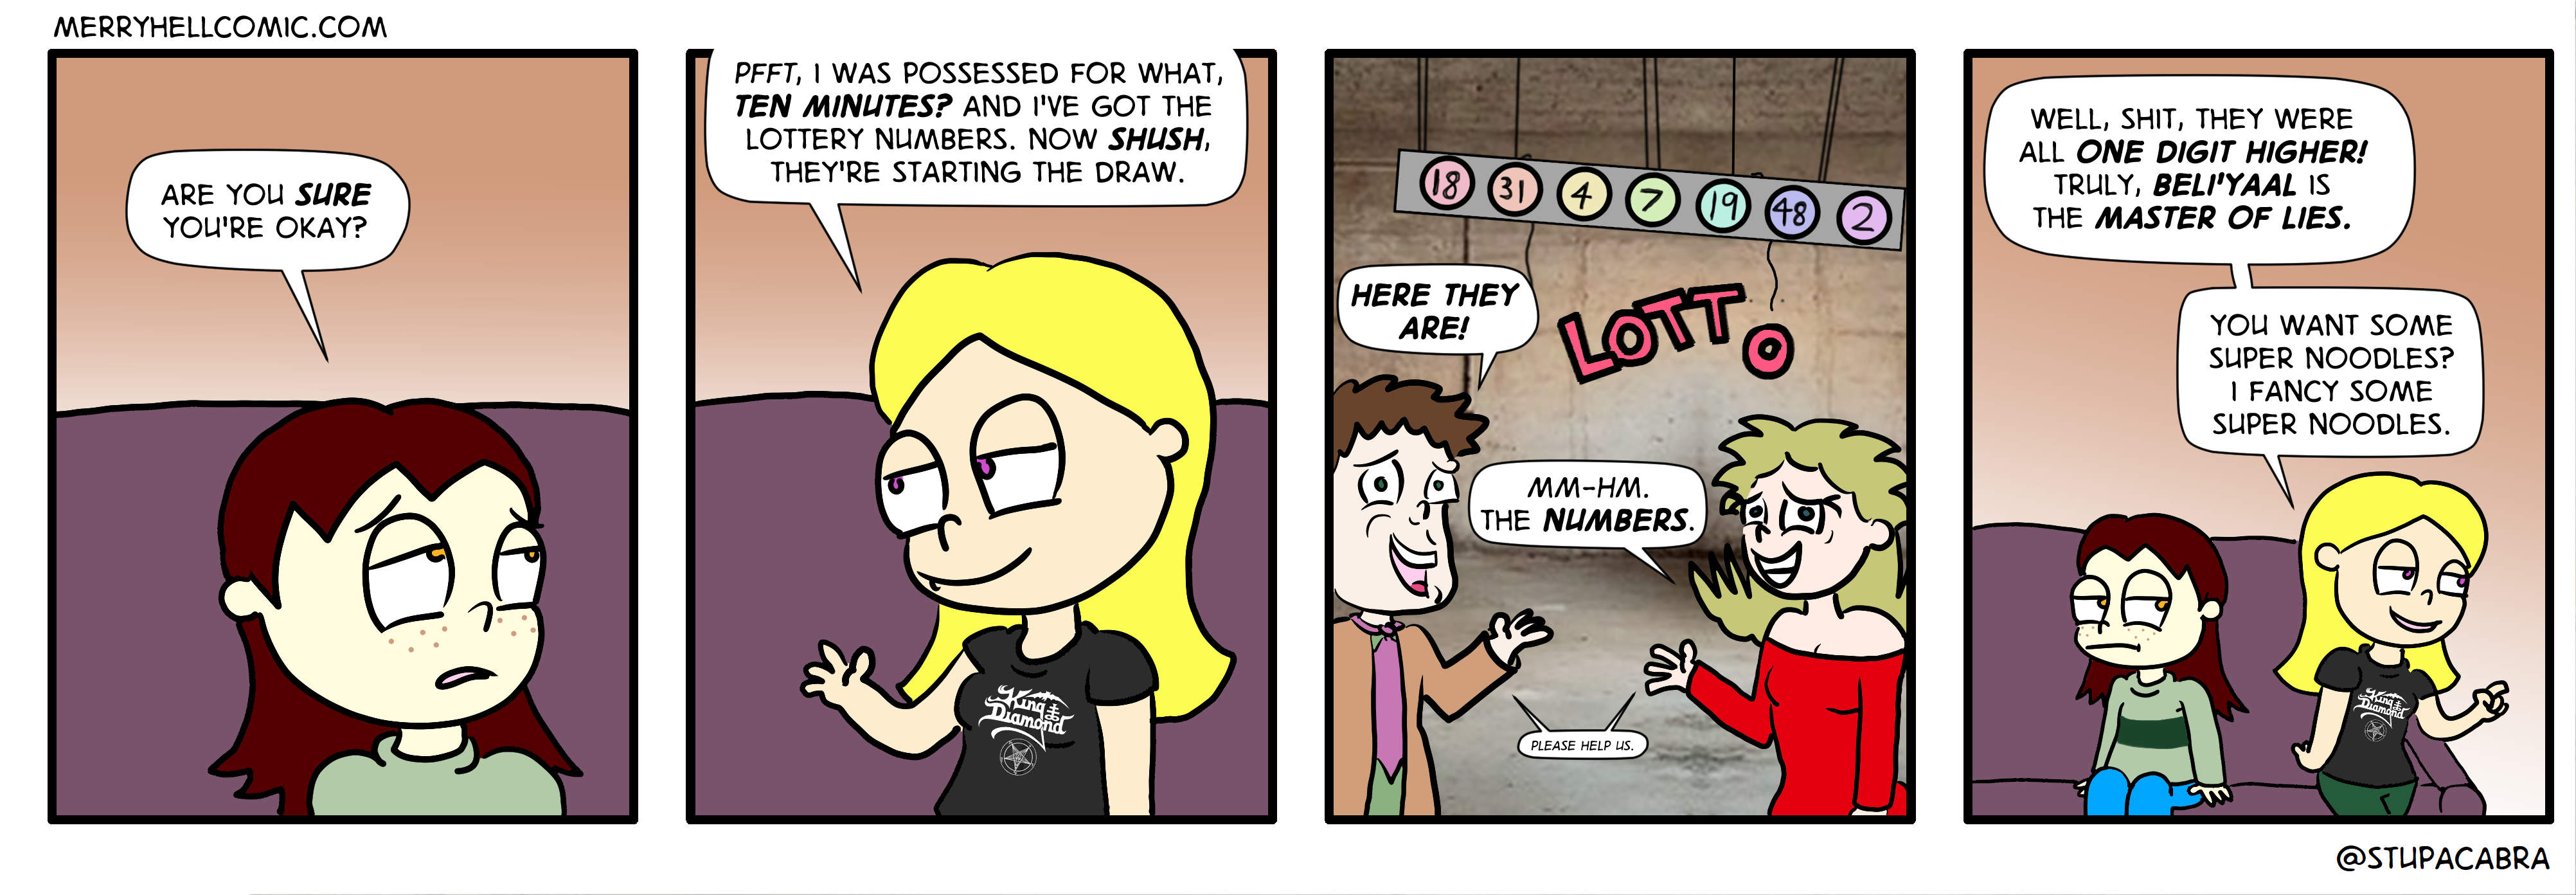 436. The draw